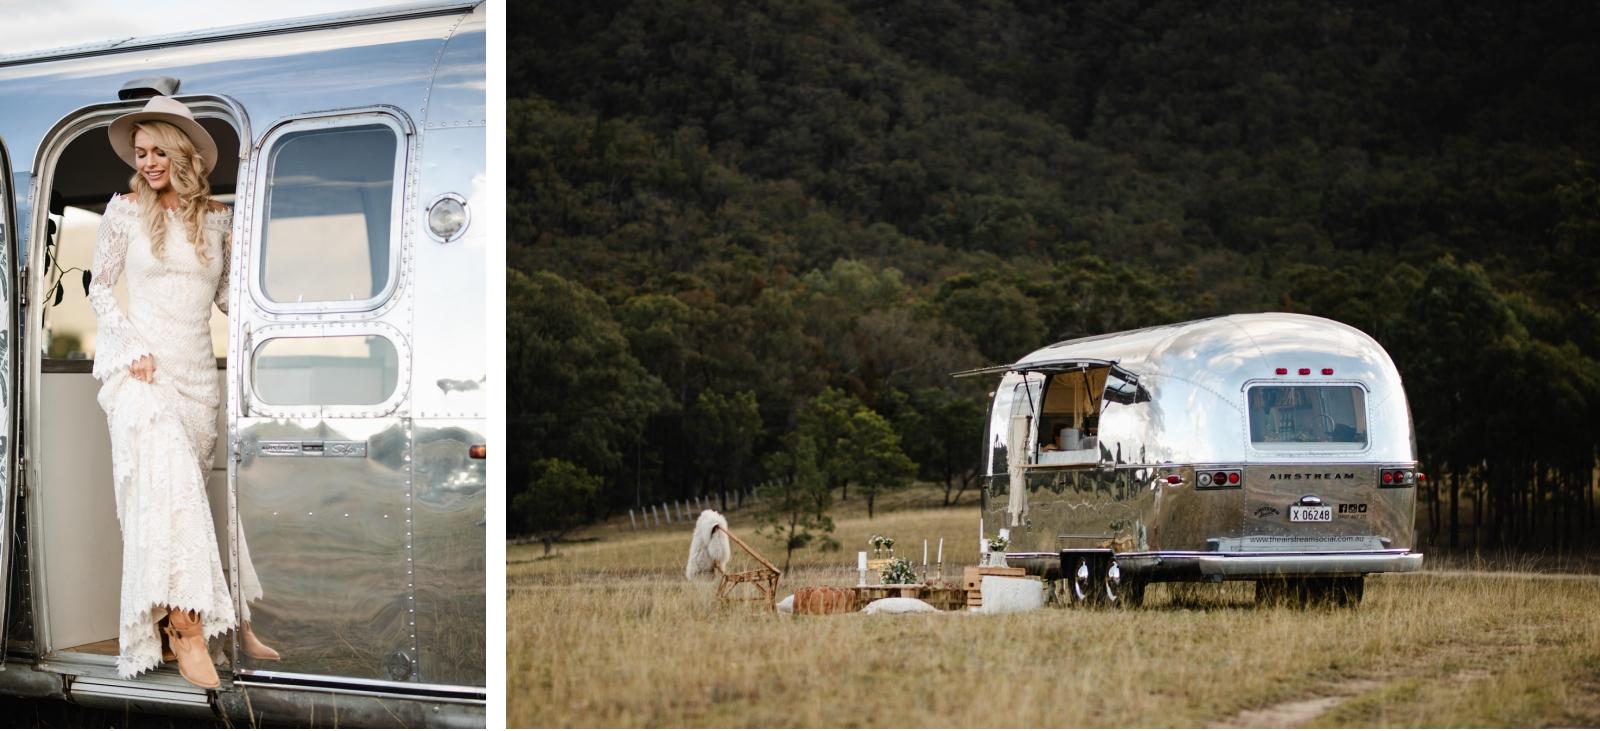 hunter-valley-wedding-planner-styled-shoot-the-airstream-social-broke-nsw-19